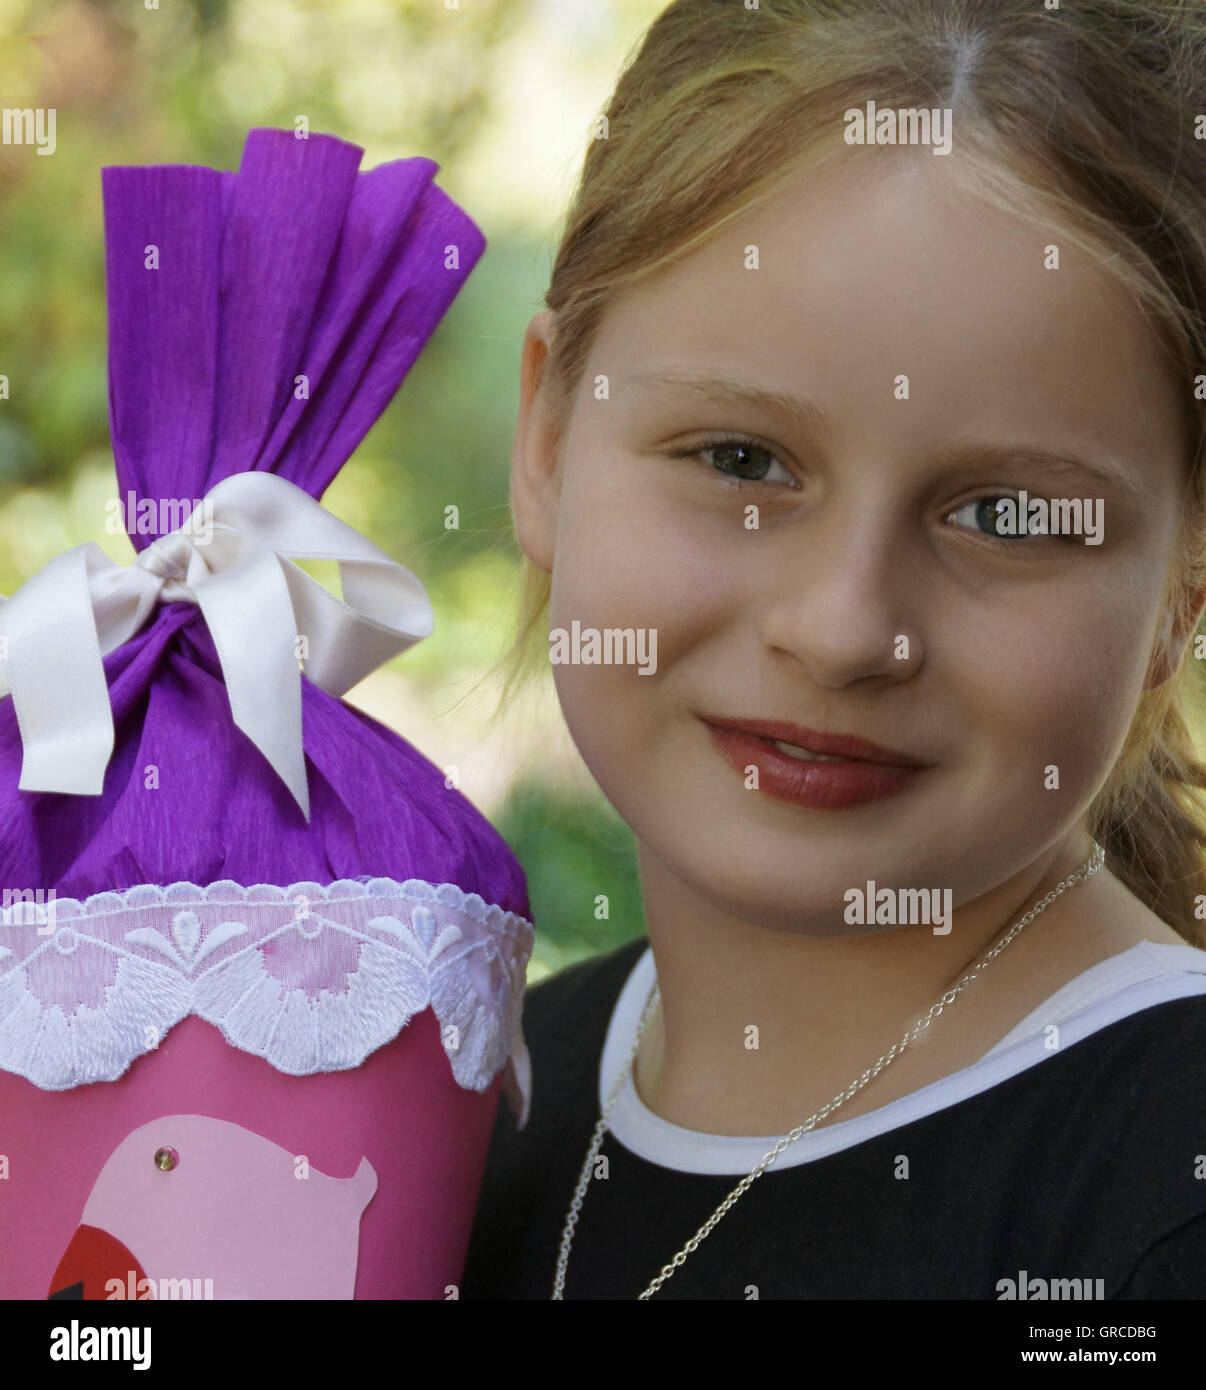 Girl With Large Cornet On The First Day At Junior High School - Stock Image